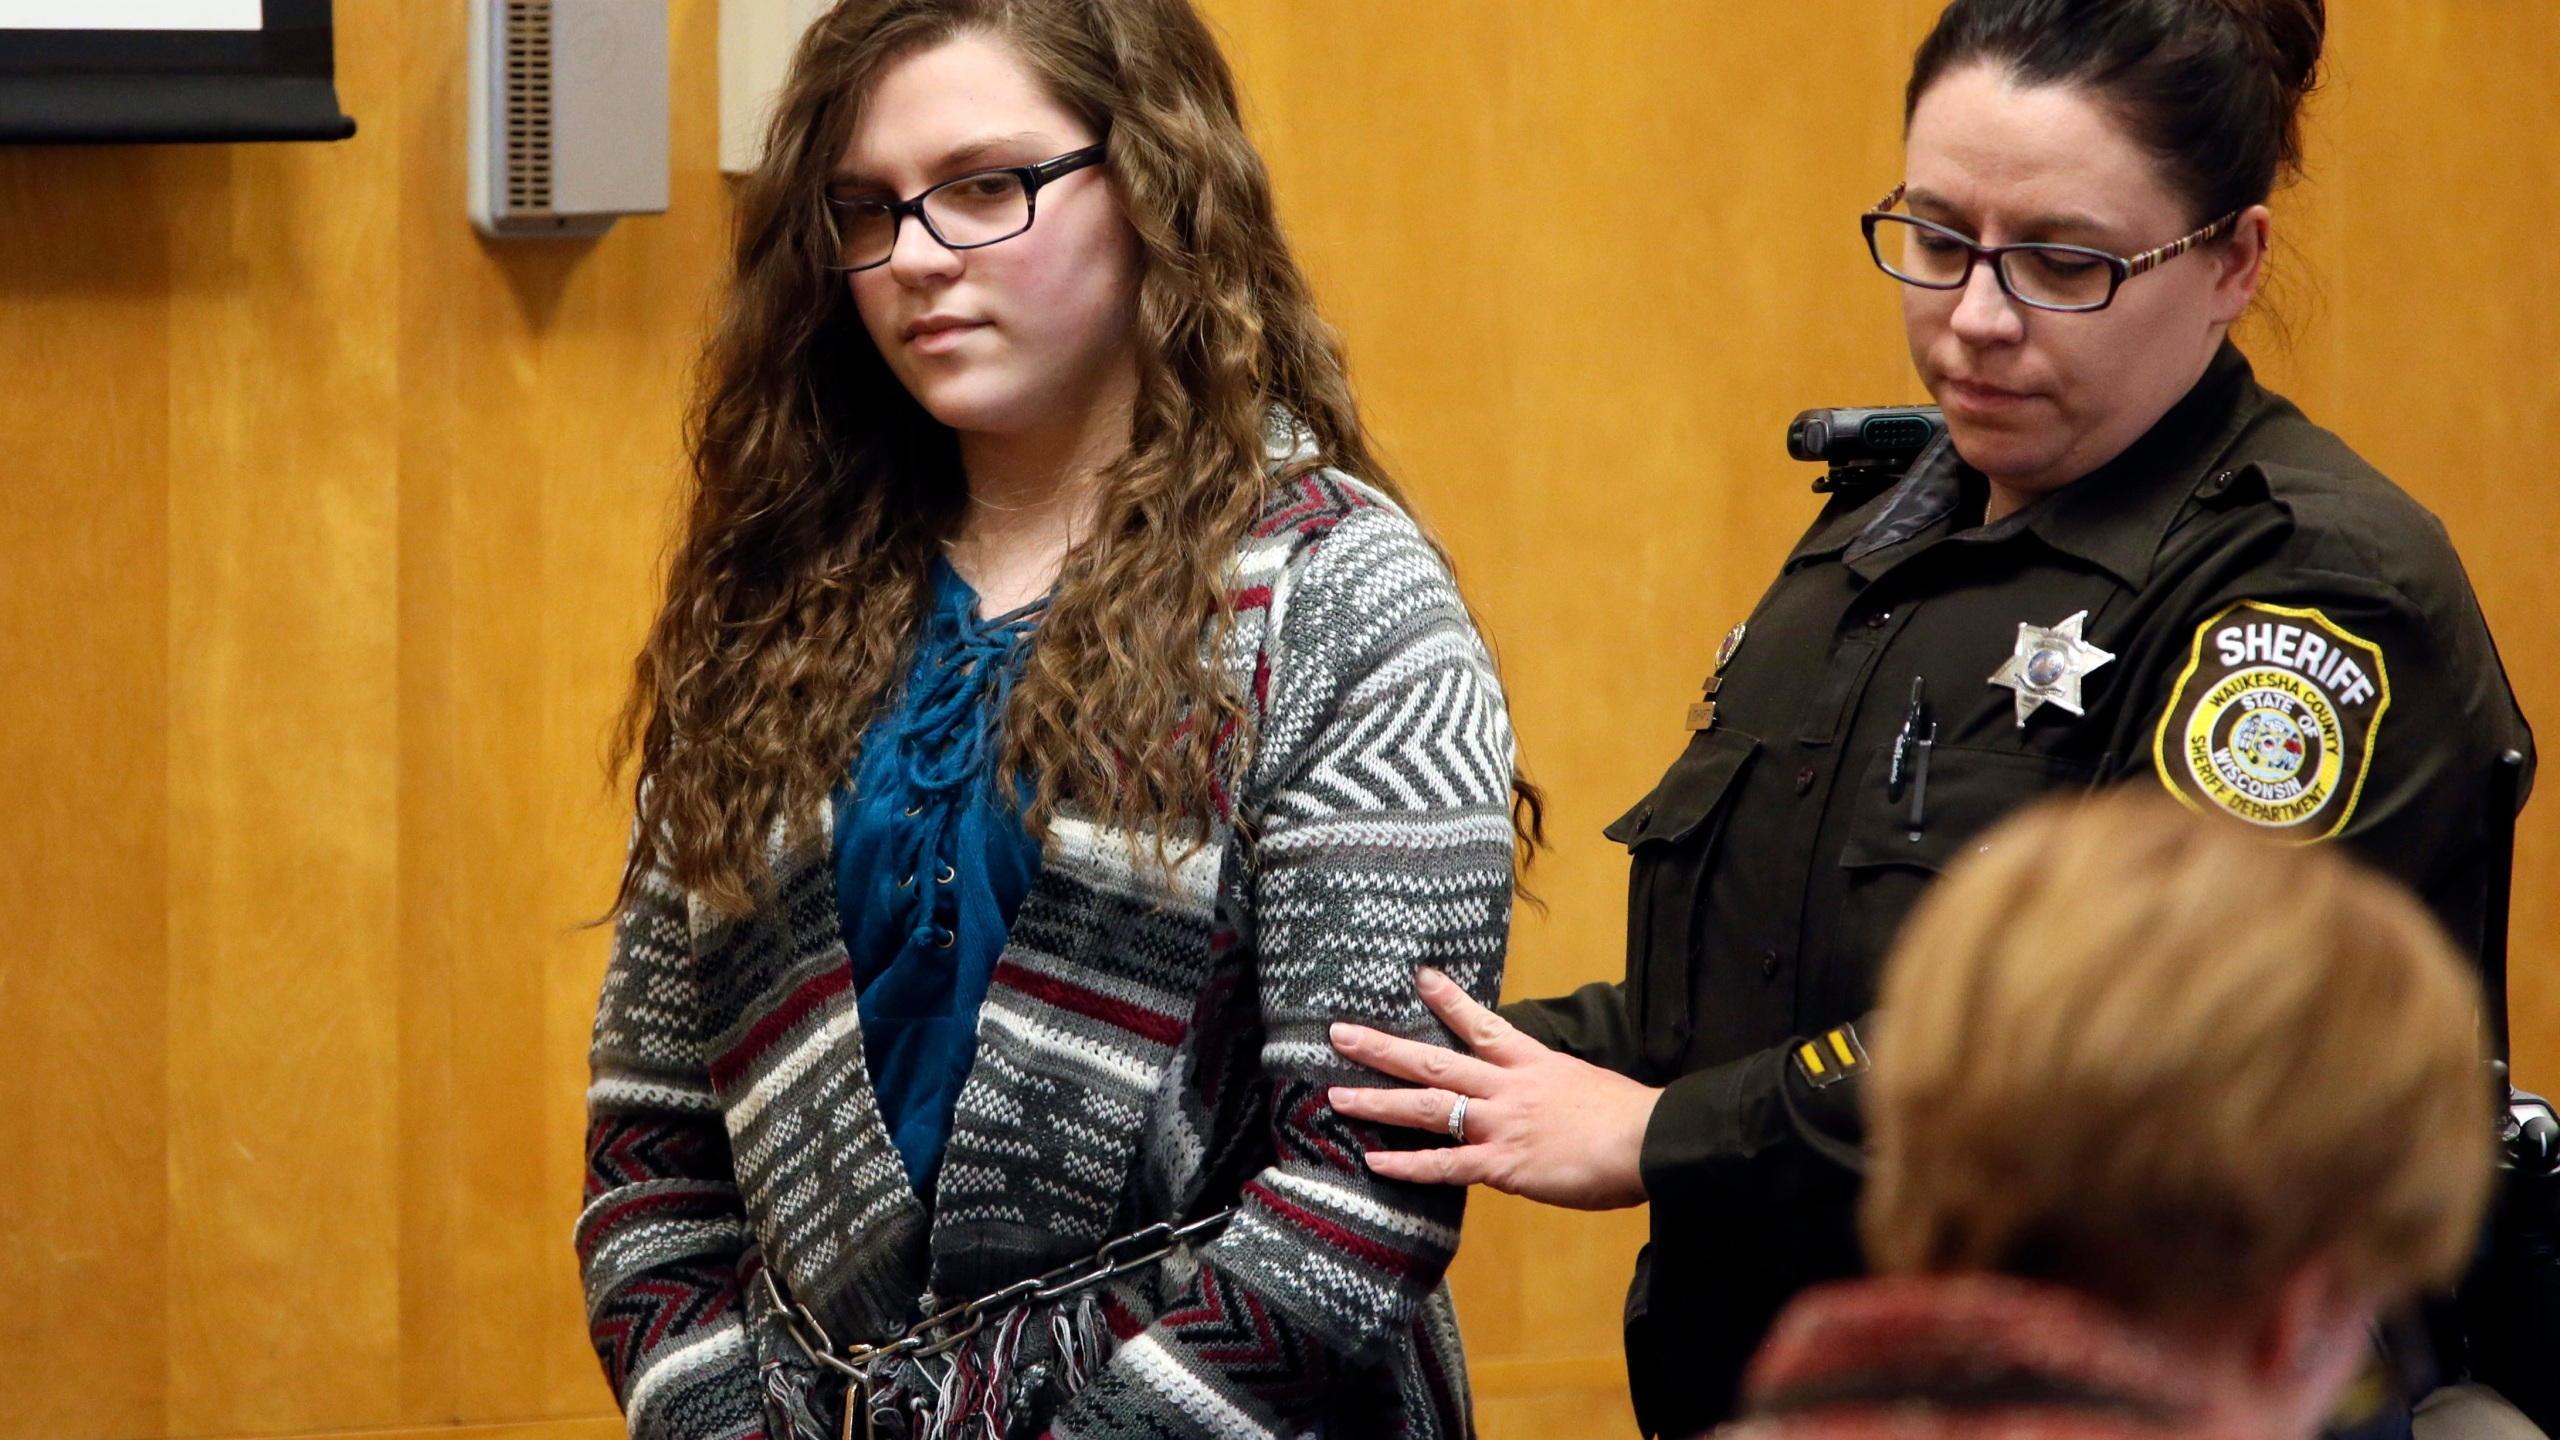 FILE - In this Dec. 21, 2017, file photo, Anissa Weier, one of two Wisconsin girls who tried to kill a classmate to win favor with a fictional horror character named Slender Man, is led into Court for her sentencing hearing, in Waukesha, Wis. A Wisconsin judge on Thursday, July 1, 2021, ordered her release after being convicted of the stabbing in 2014. Weier asked Waukesha County Judge Michael Bohren this year to release her from the Winnebago Mental Health Institute, arguing she was no longer a threat to anyone. (Michael Sears/Milwaukee Journal-Sentinel via AP, File)